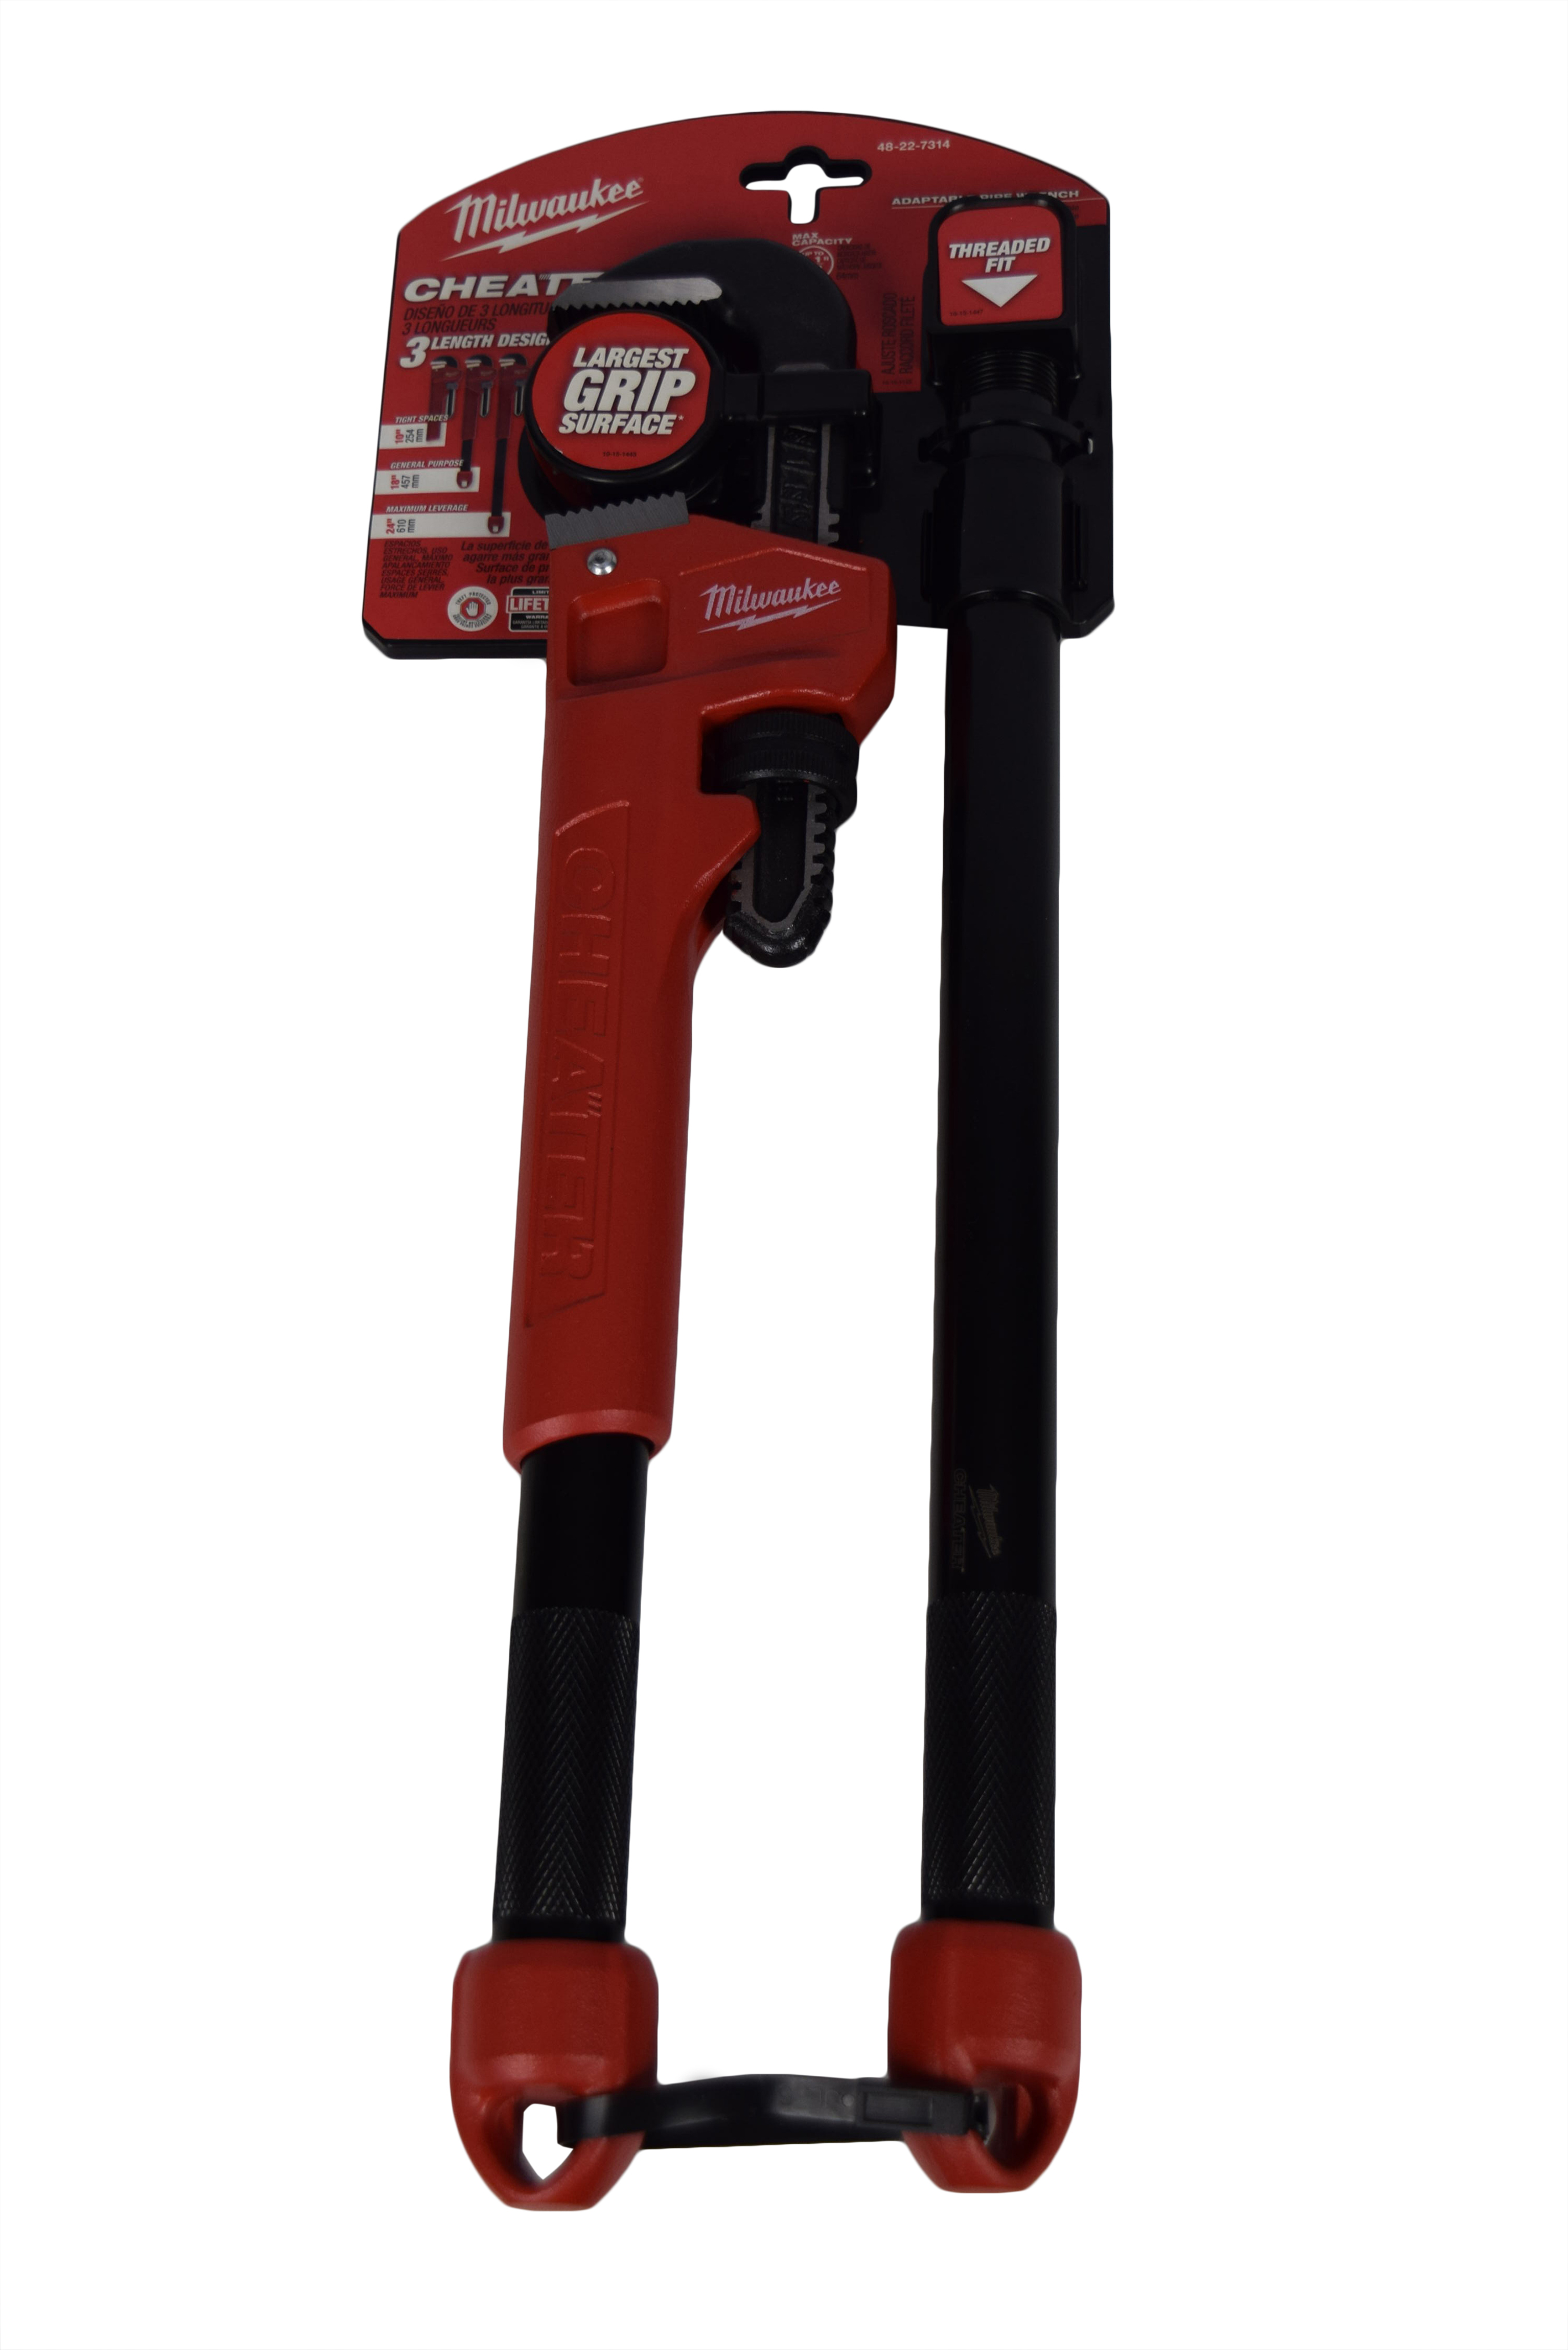 Milwaukee-48-22-7314-Adaptable-Cheater-Pipe-Wrench-image-1